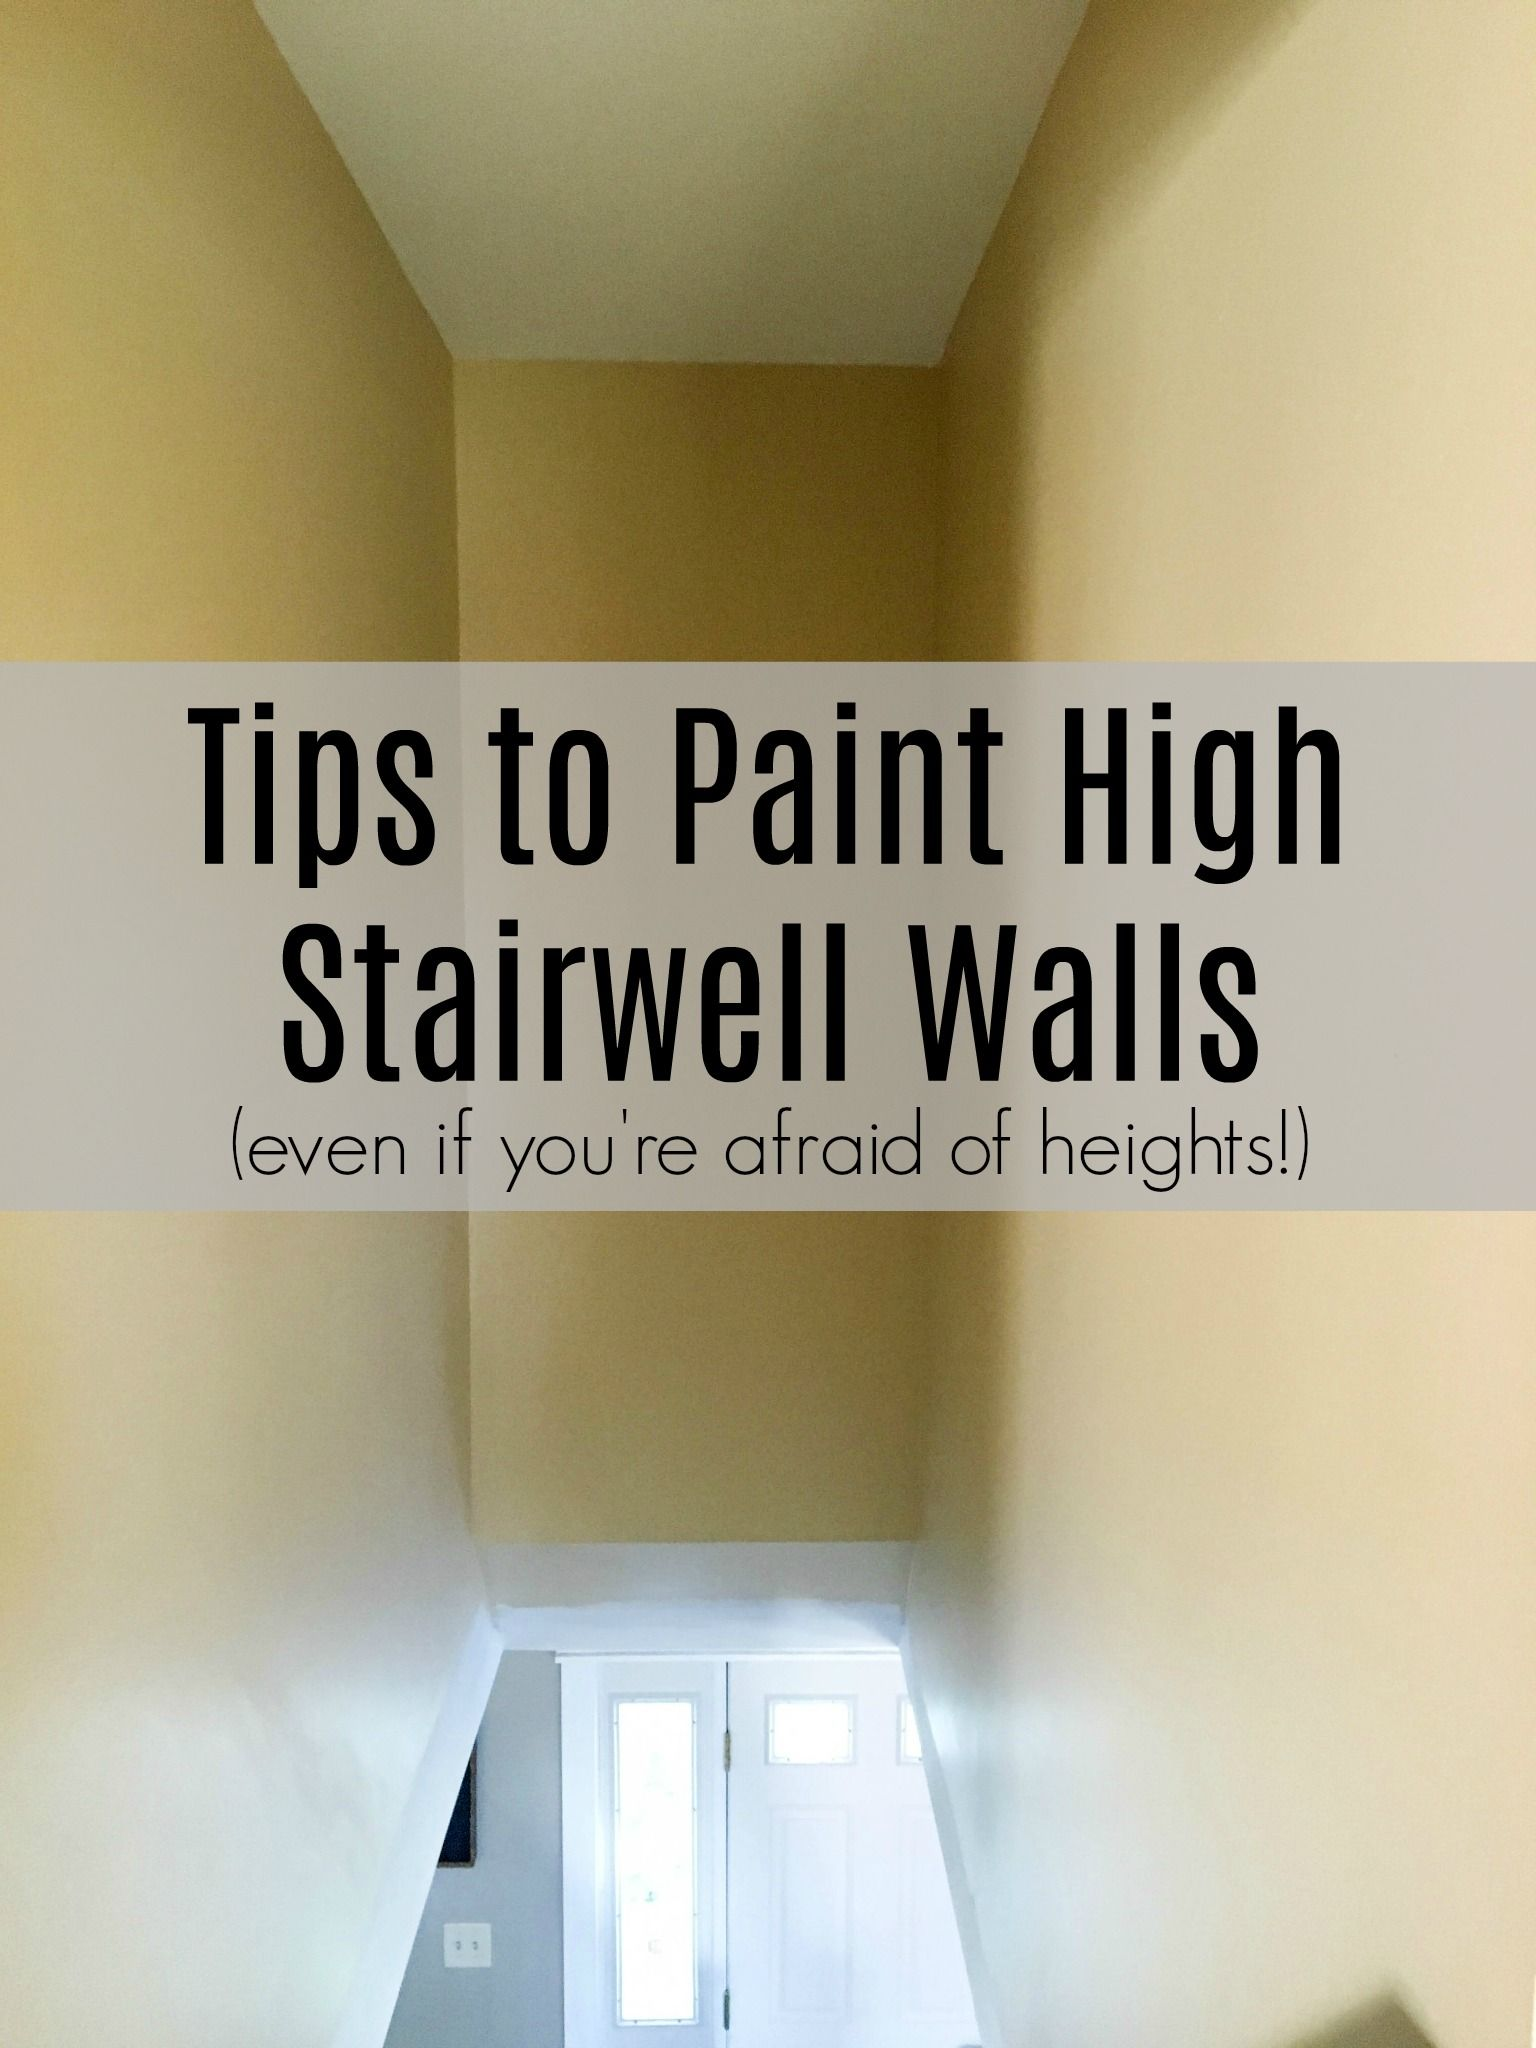 How To Paint High Walls On Stairs Diy Home Repair Diy Home Improvement Home Improvement Loans